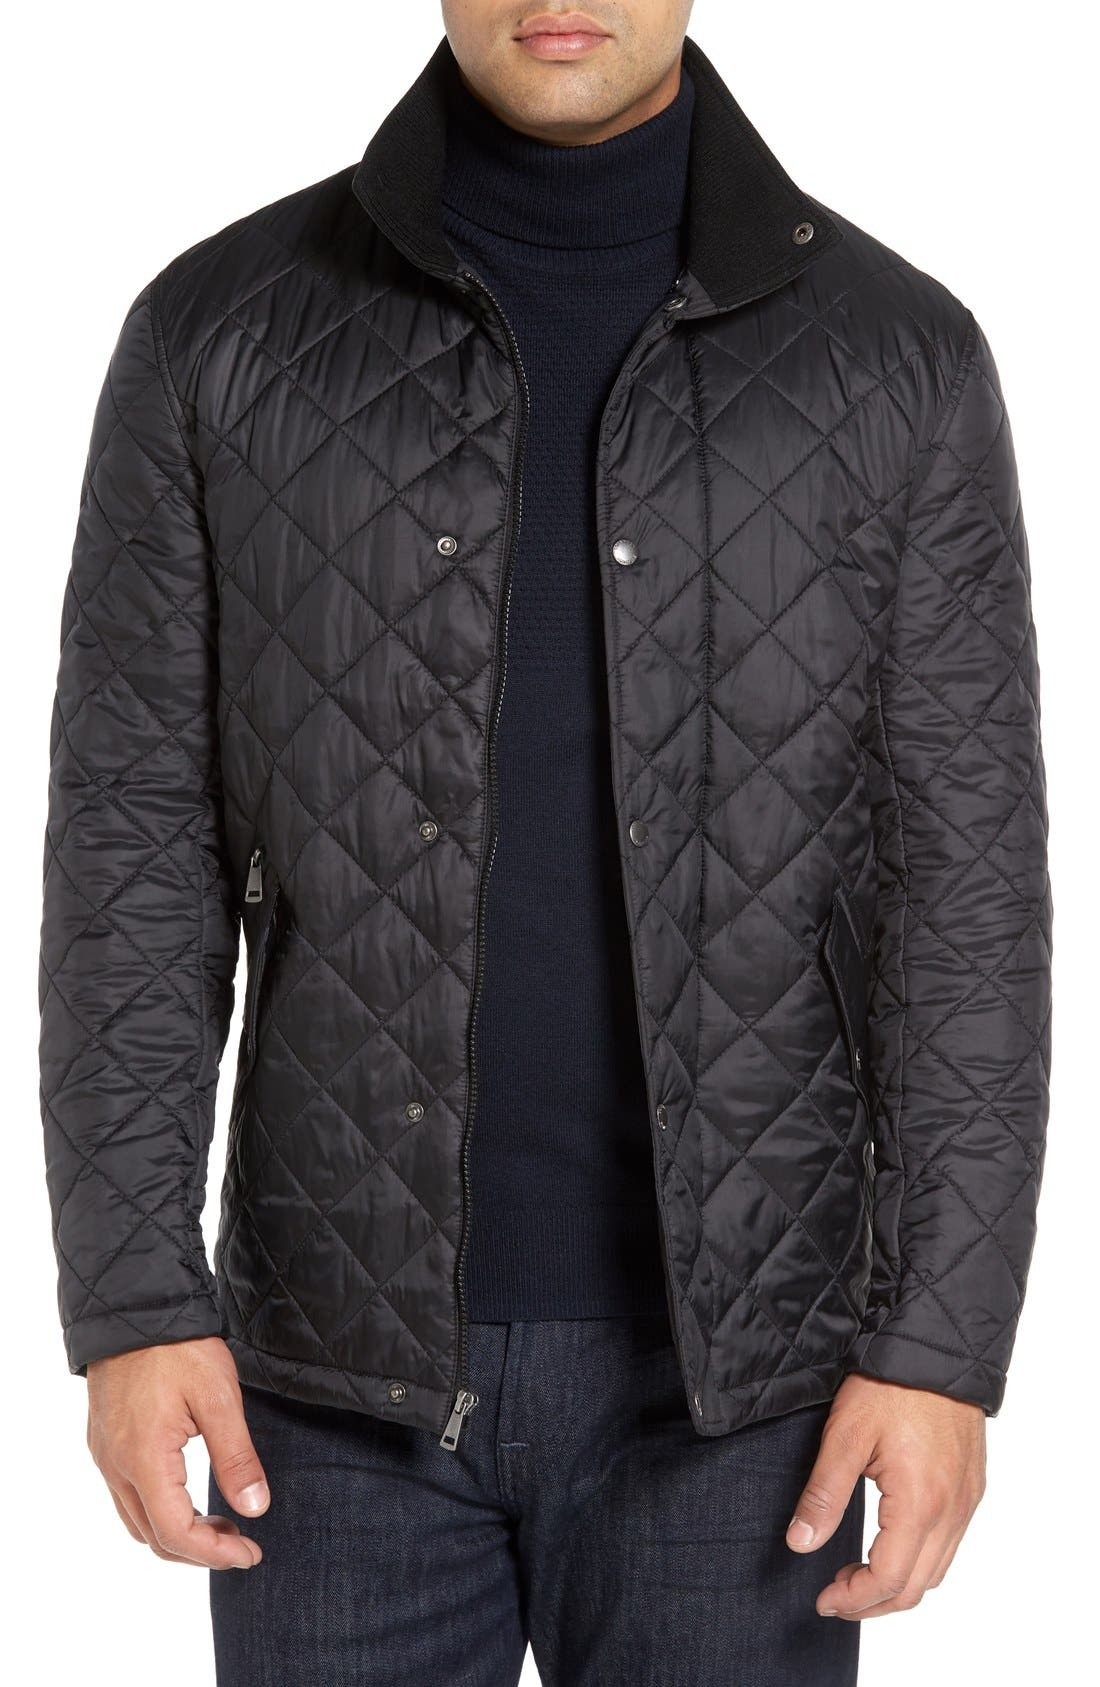 Diamond Quilted Jacket,                             Main thumbnail 1, color,                             BLACK